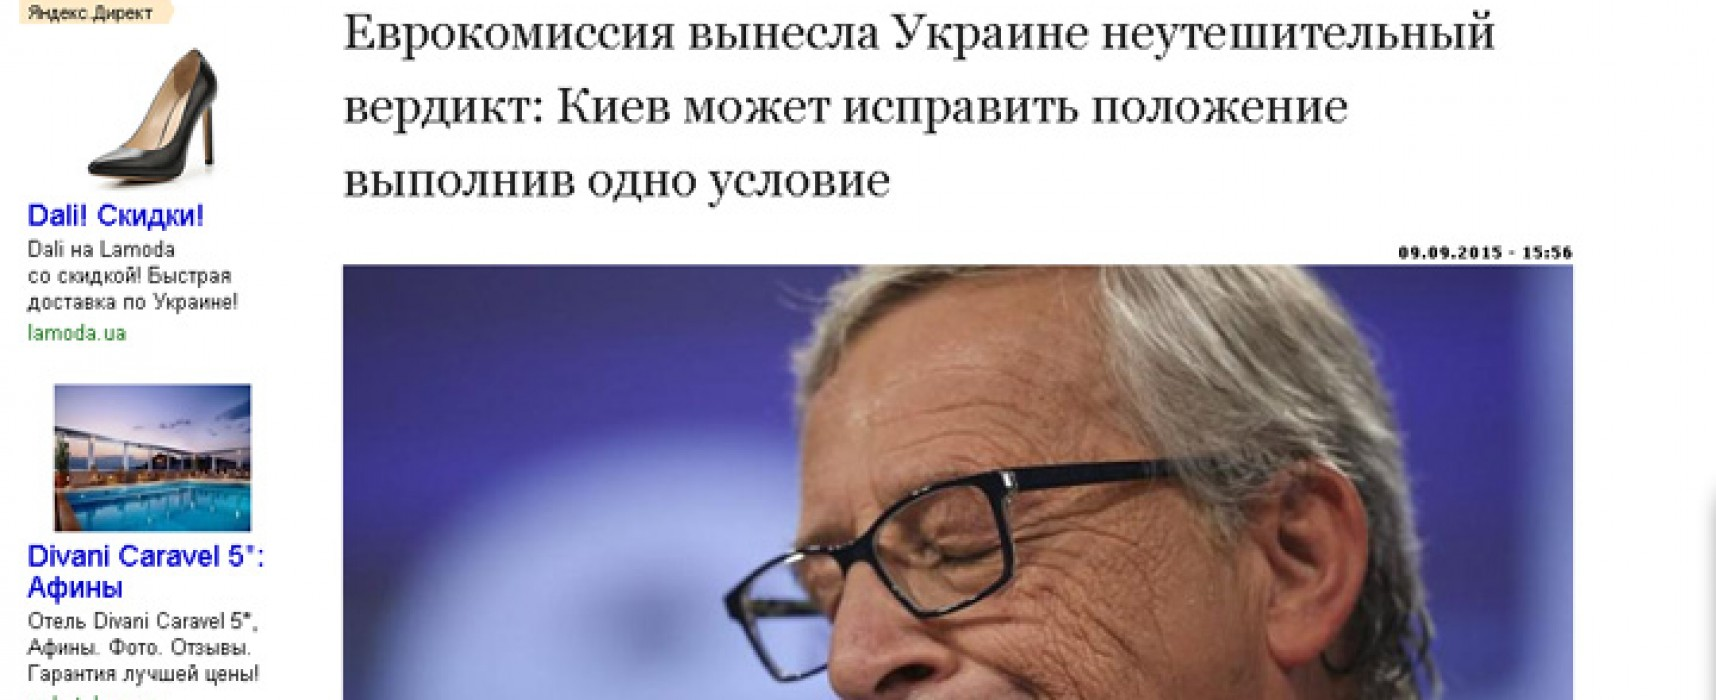 Russian Media Claim that European Commission President Predicts War and Ruin for Ukraine